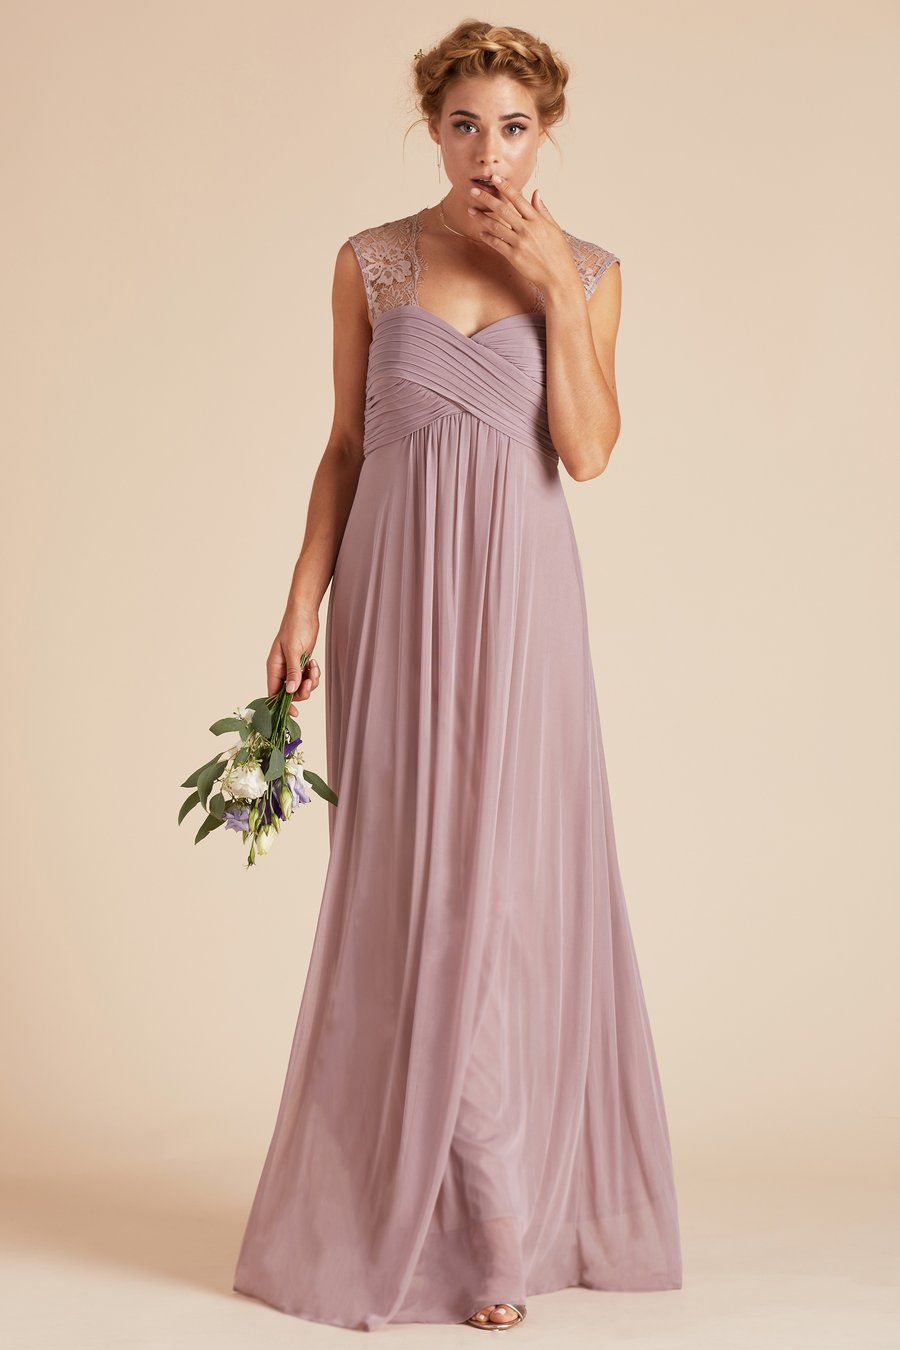 3461524fc Mary bridesmaid dress by Birdy Grey in Mauve. Vintage style lace empire  waist gown under $100.